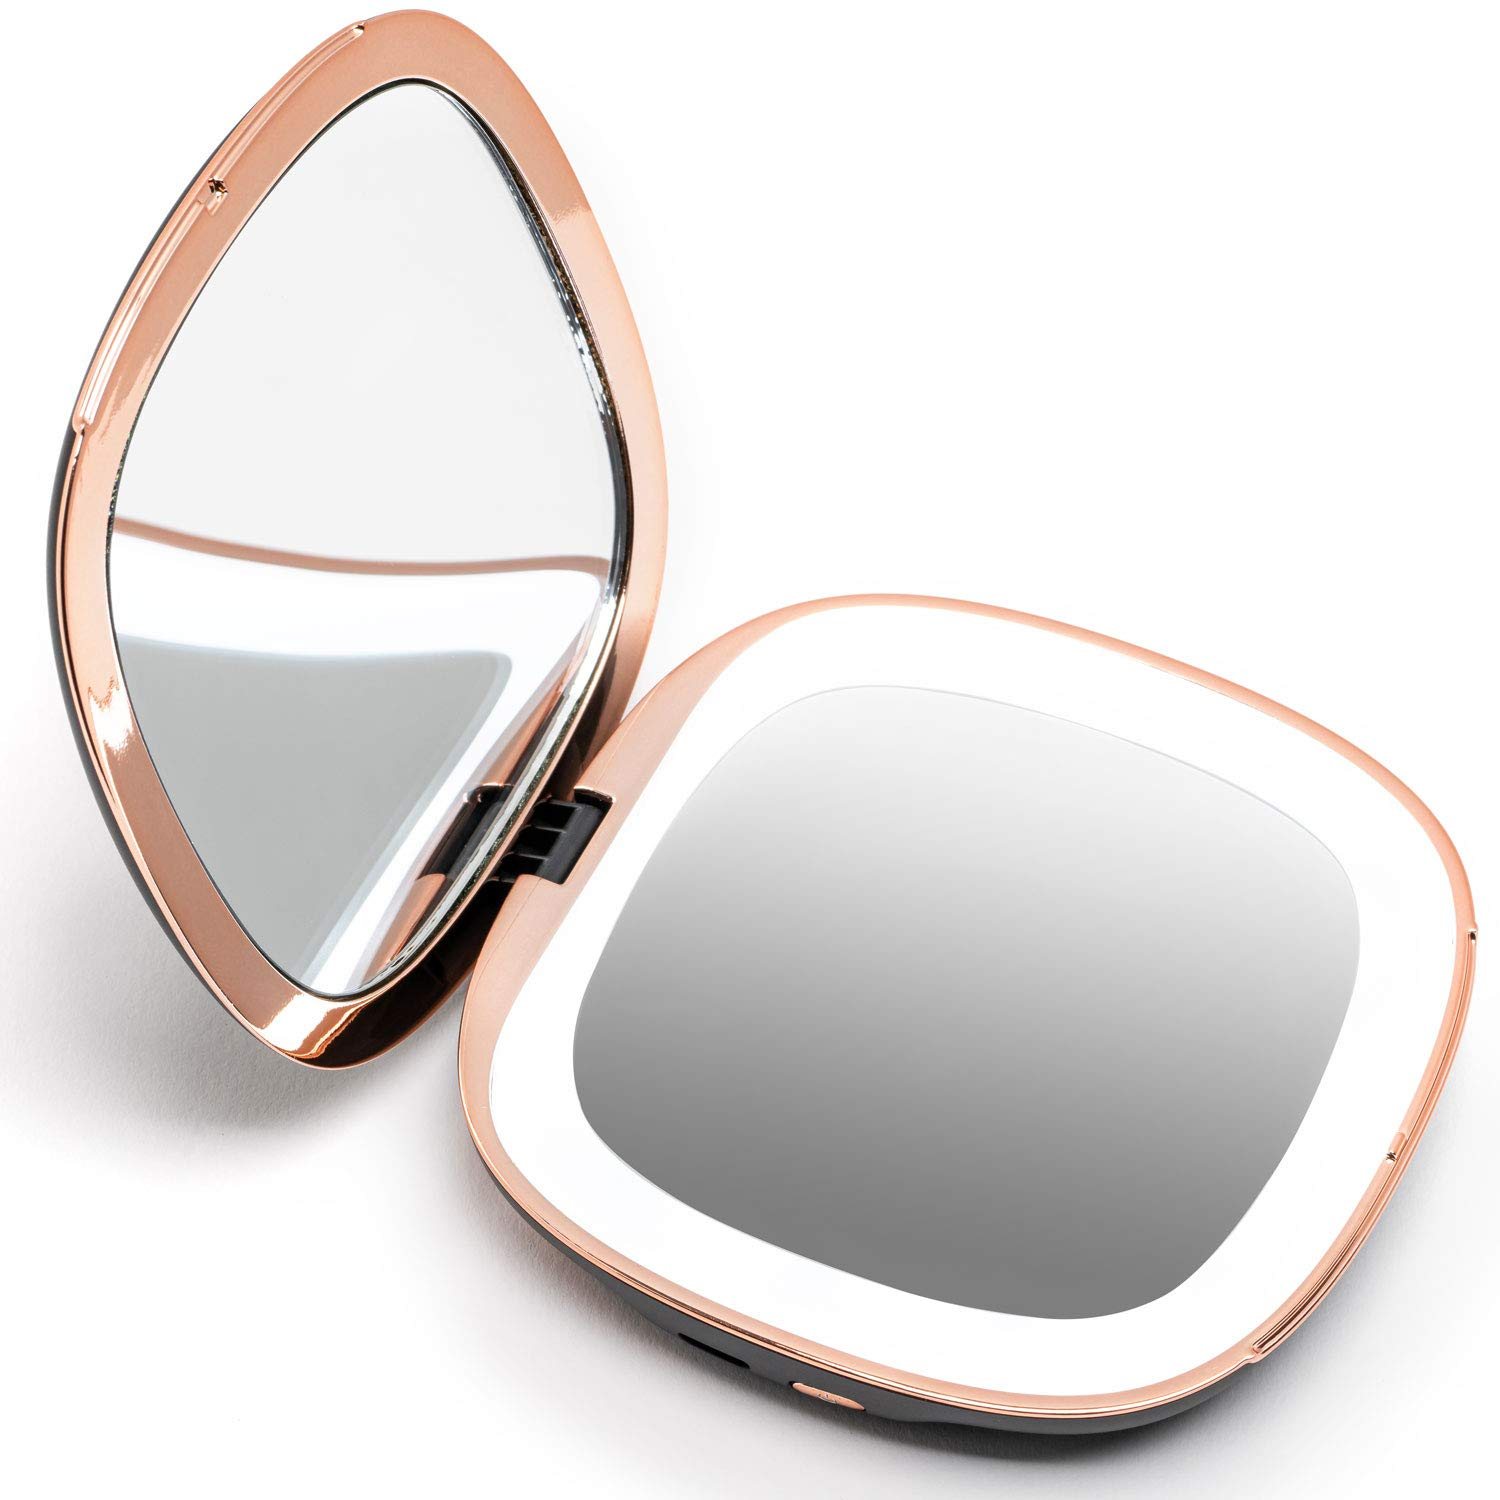 Fancii Compact Makeup Mirror with Natural LED Lights, 1x 10x Magnifying – Rechargeable, Portable, Lighted 4 Hand Mirror for Travel and Purses Mila Black